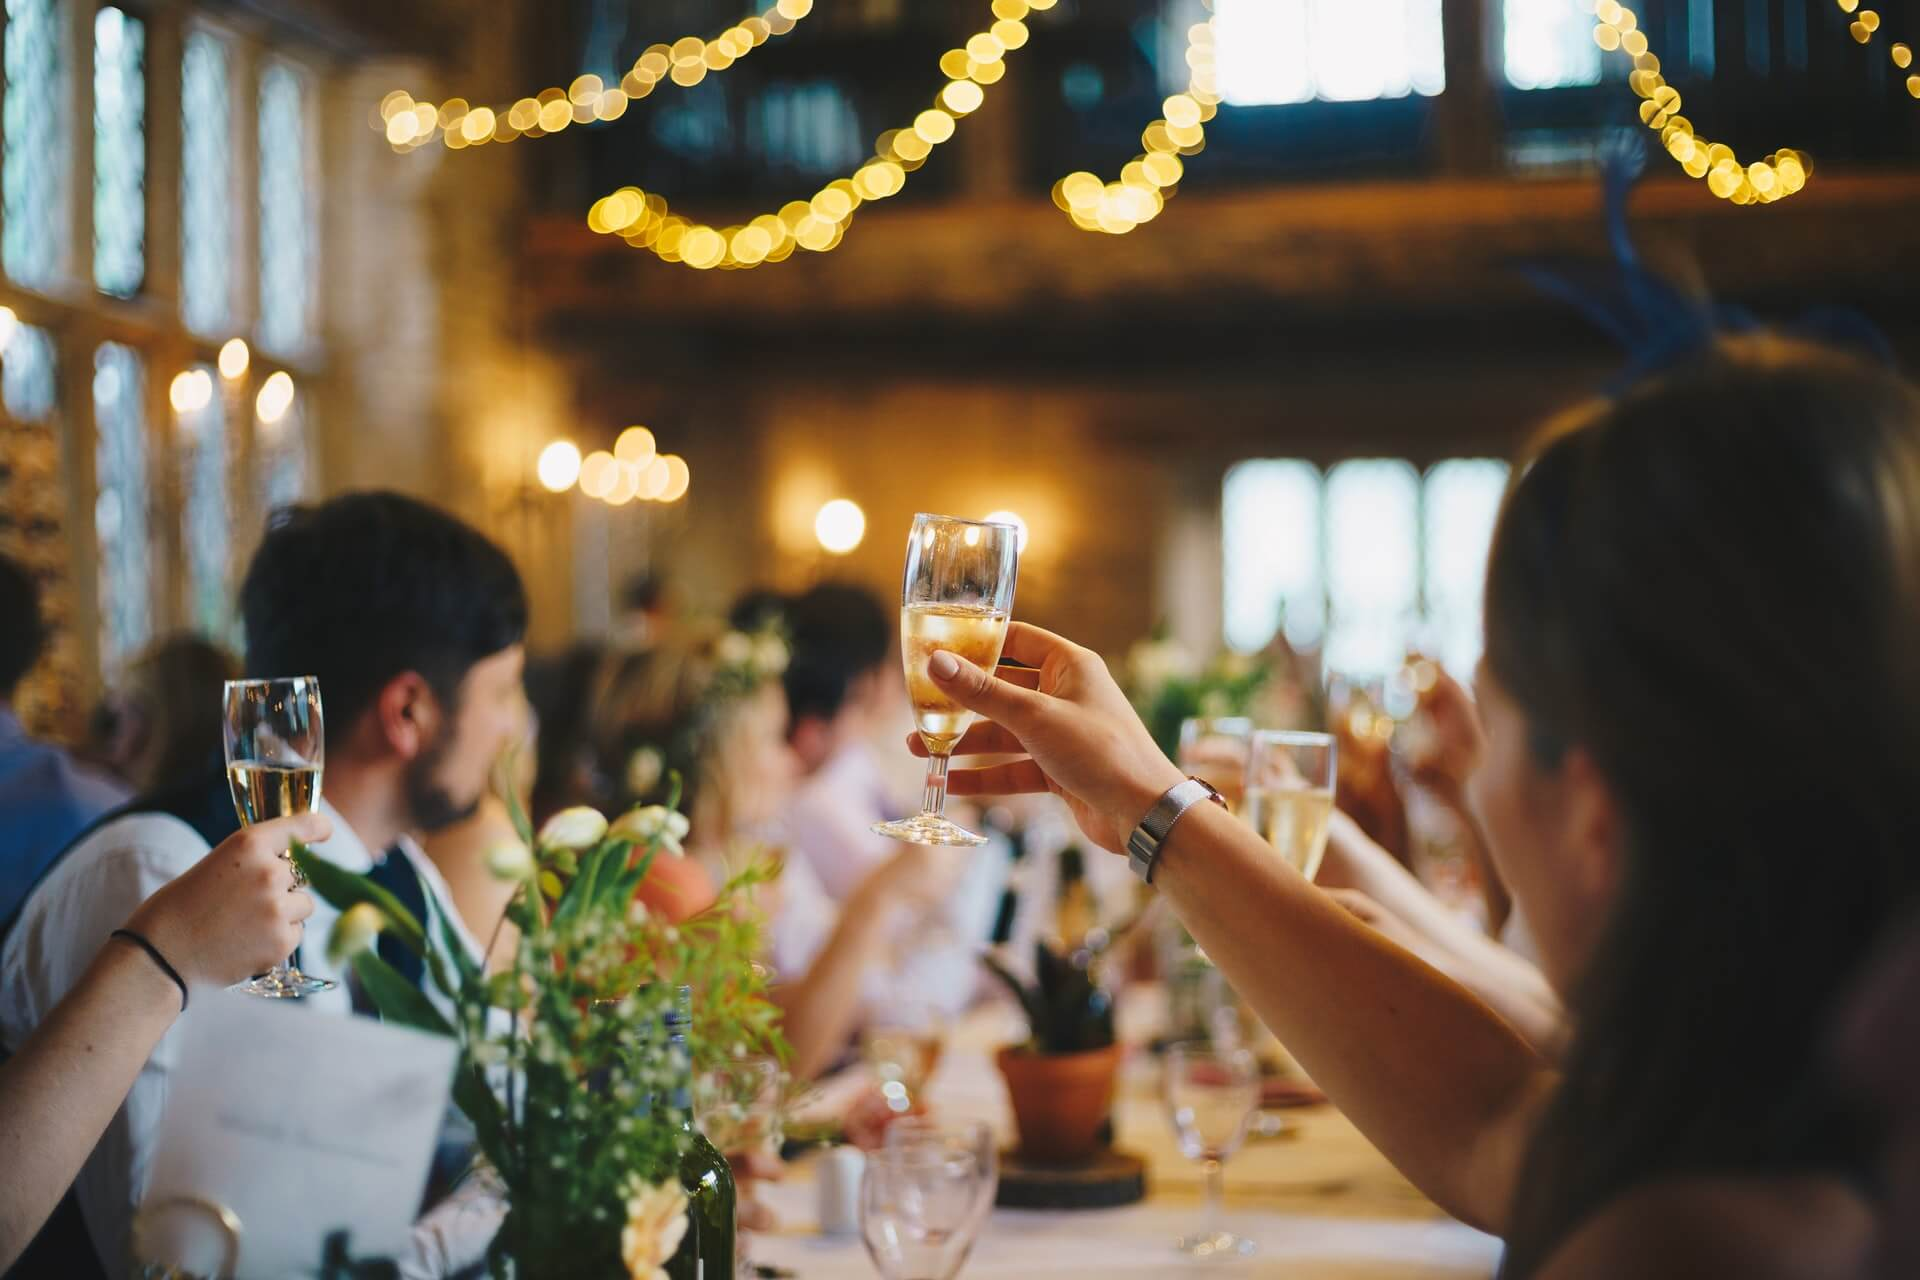 5 wedding trends that will get you to dream wedding status